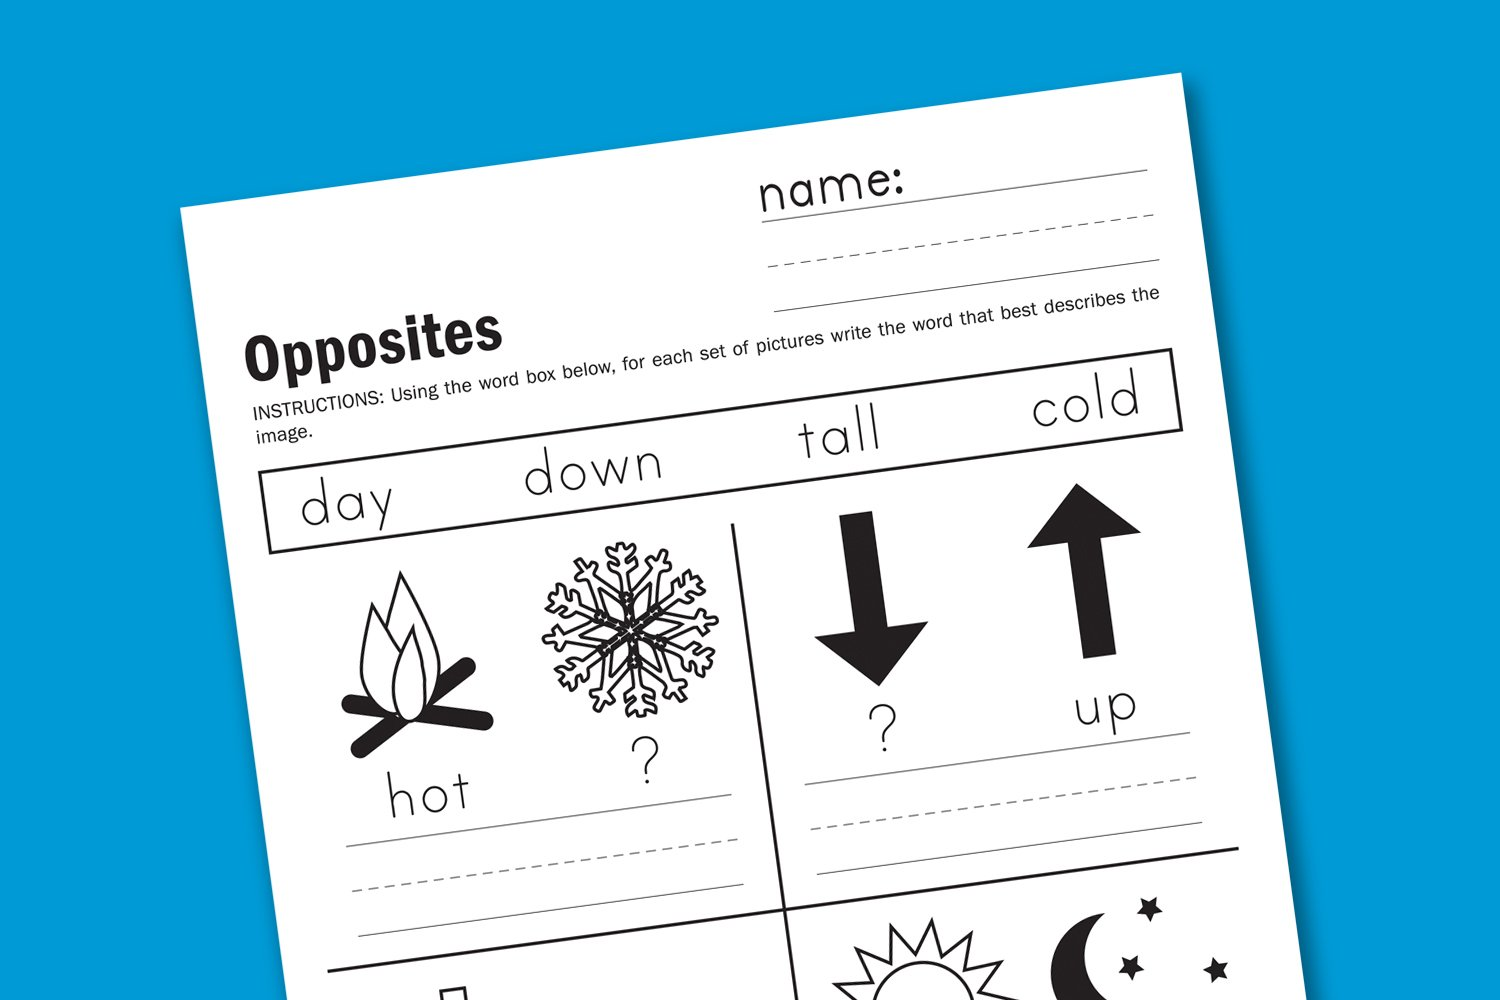 worksheet Opposite Worksheets inspired by opposition paging supermom download